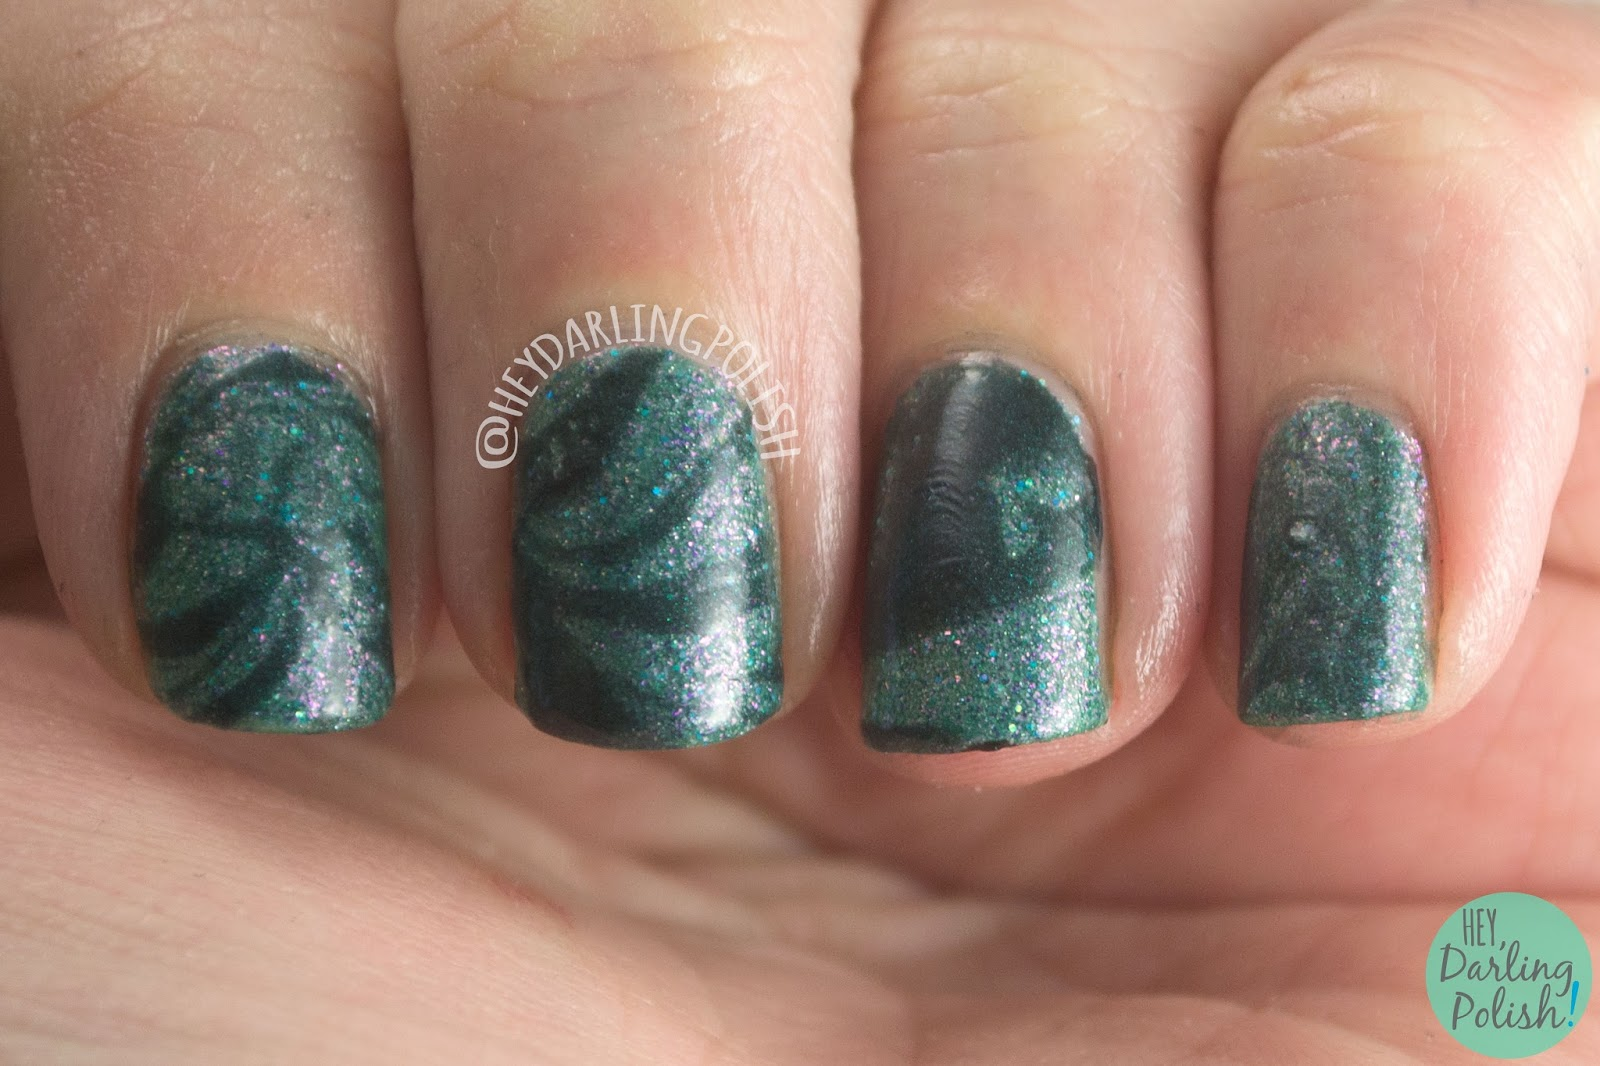 nails, nail polish, indie polish, kbshimmer, hey darling polish, teal another tail, shimmer, teal, watermarble,